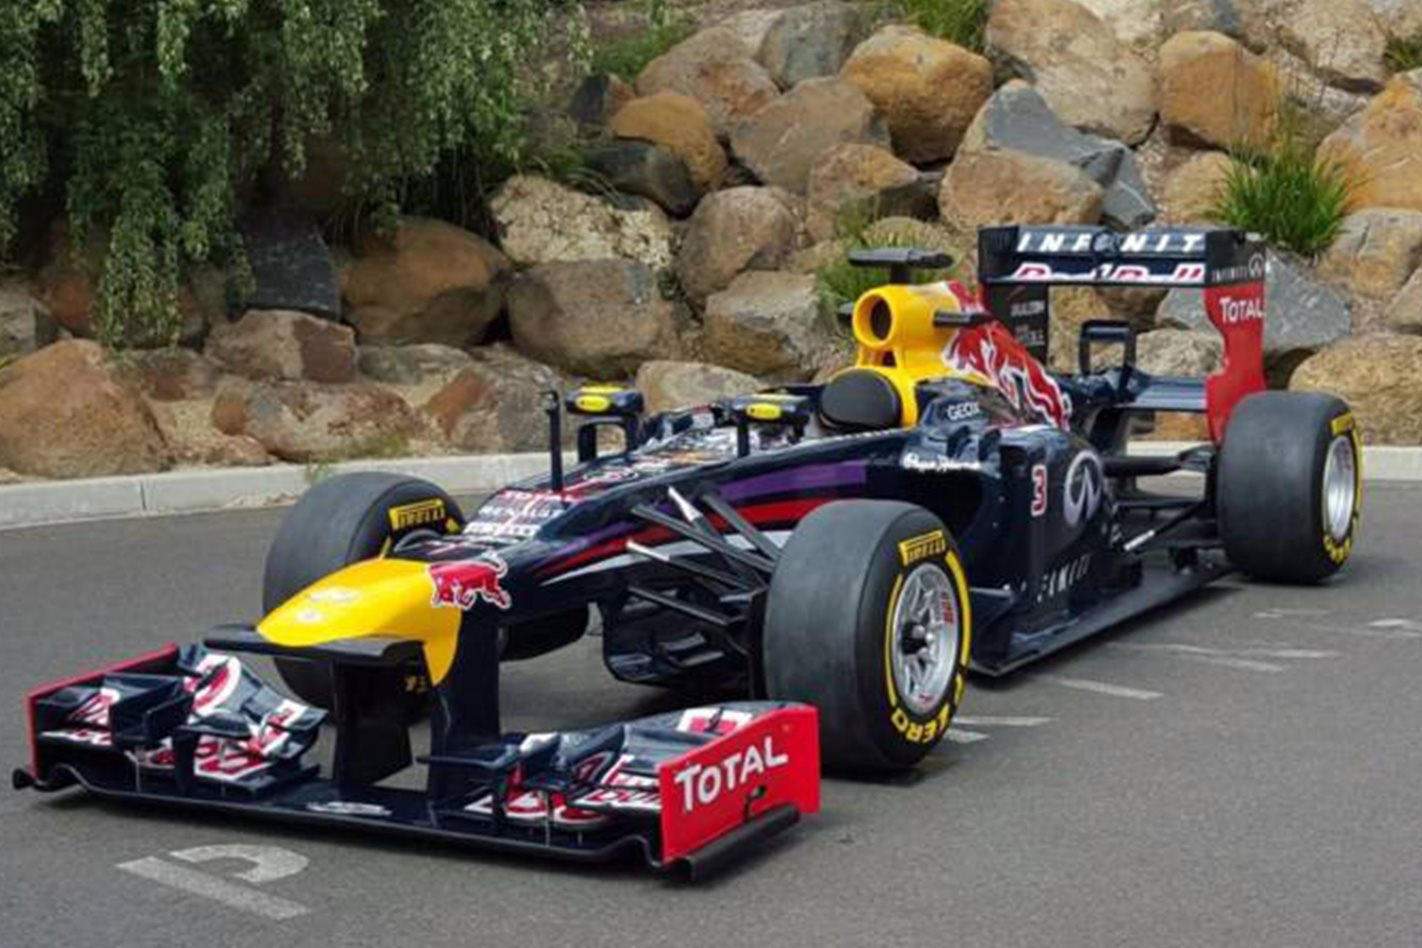 2013 Red Bull F1 car for sale in Australia